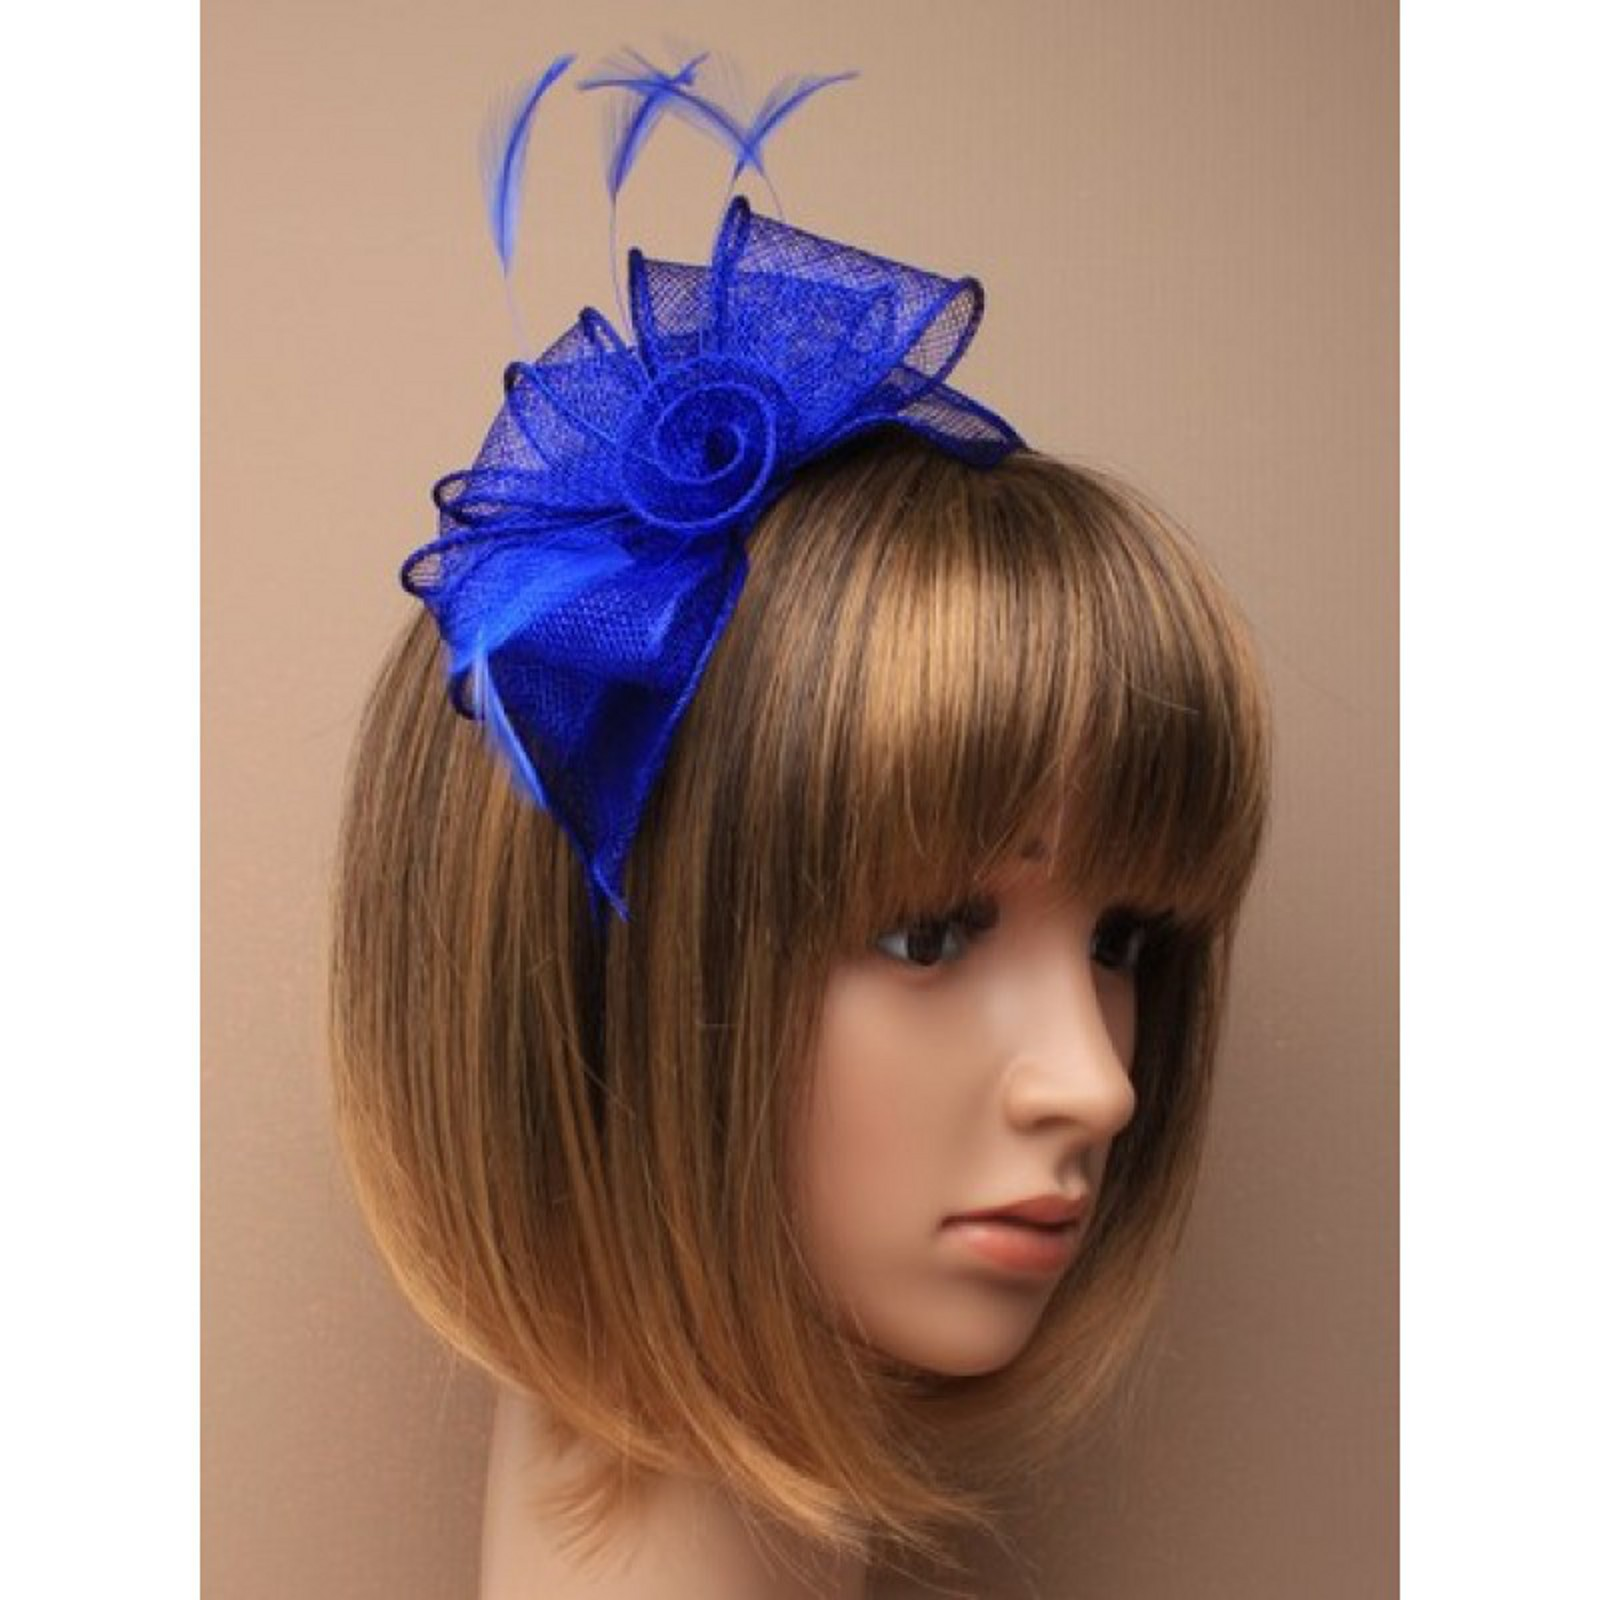 Arranview-5918-blue-fascinator